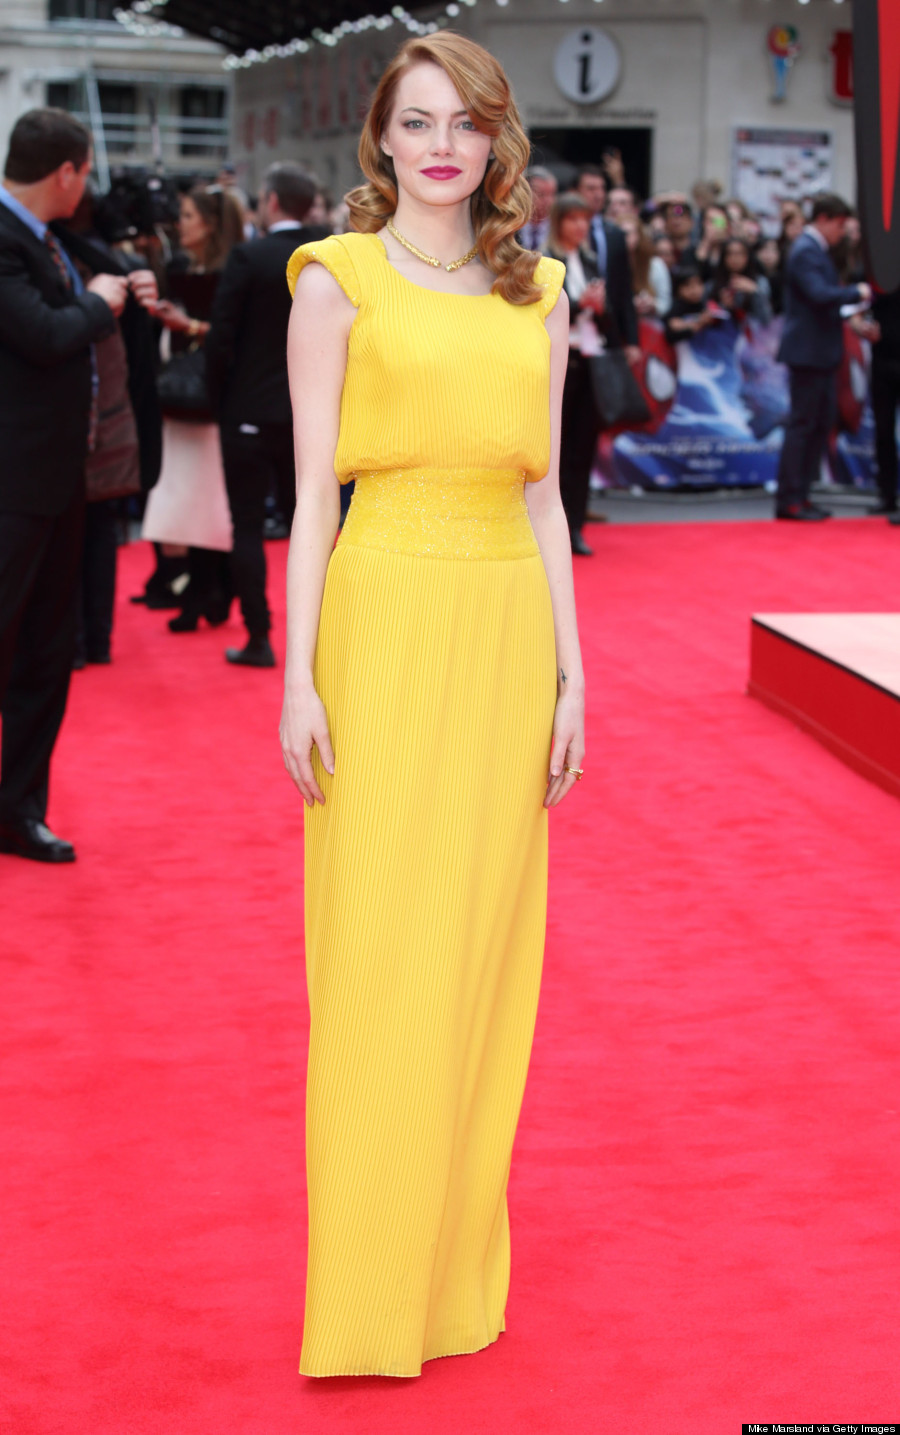 Emma Stone's Yellow 'Amazing Spider-Man 2' Versace Dress Is Iconic ...